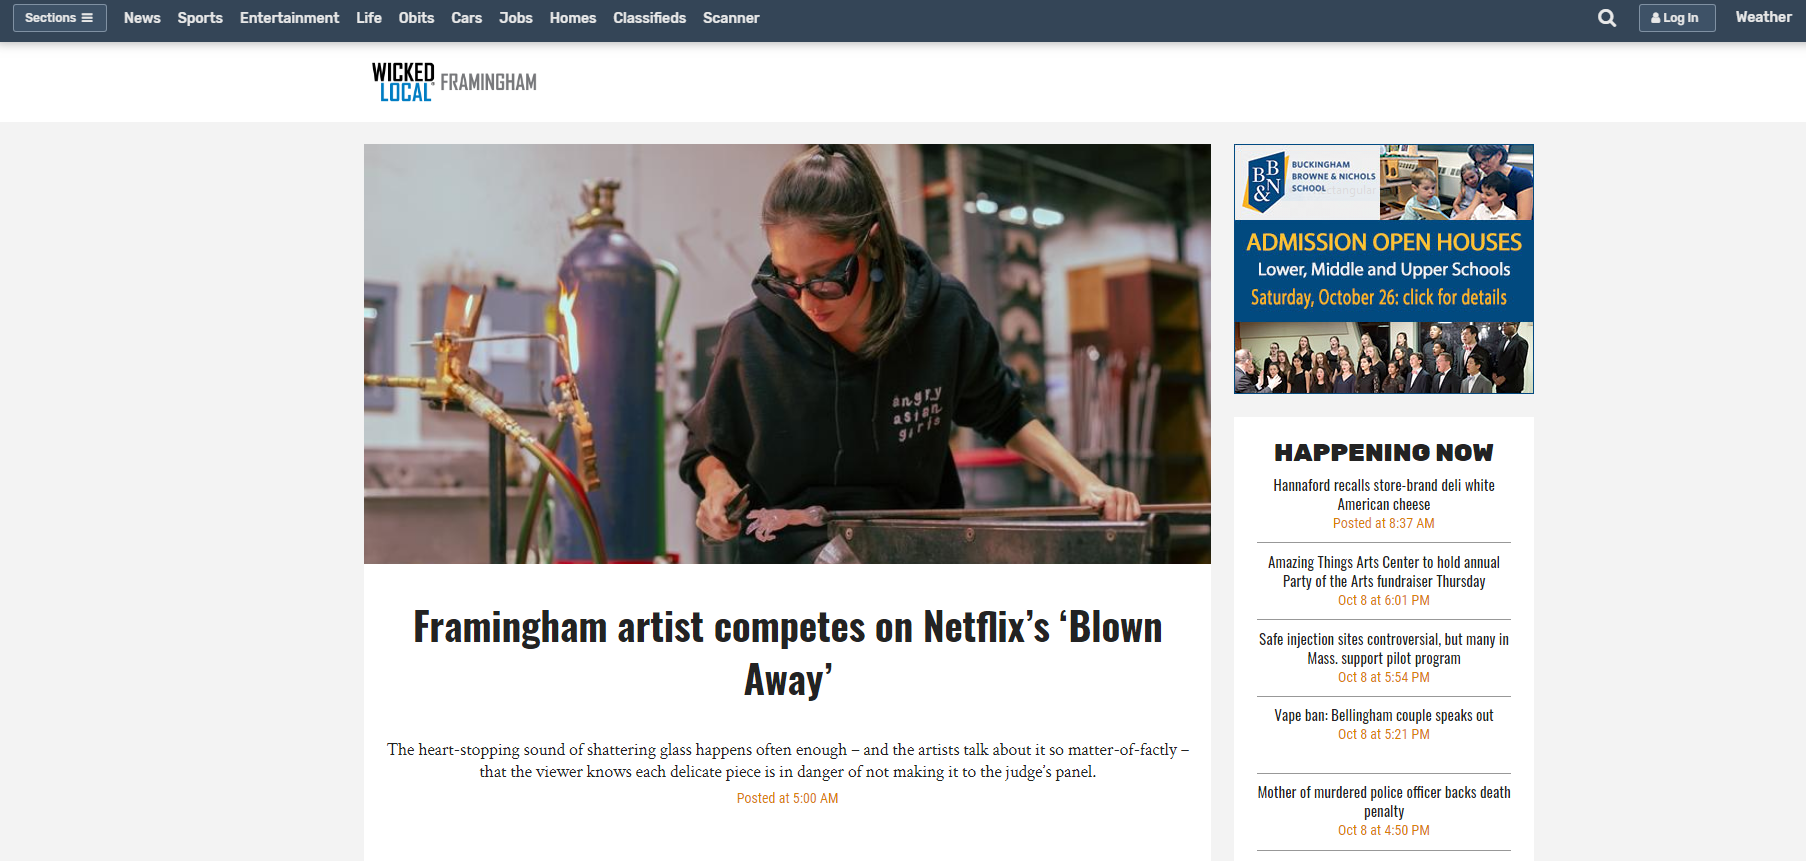 The MetroWest Daily News   Oct 9th 2019 - Framingham artist competes on Netflix's 'Blown Away'